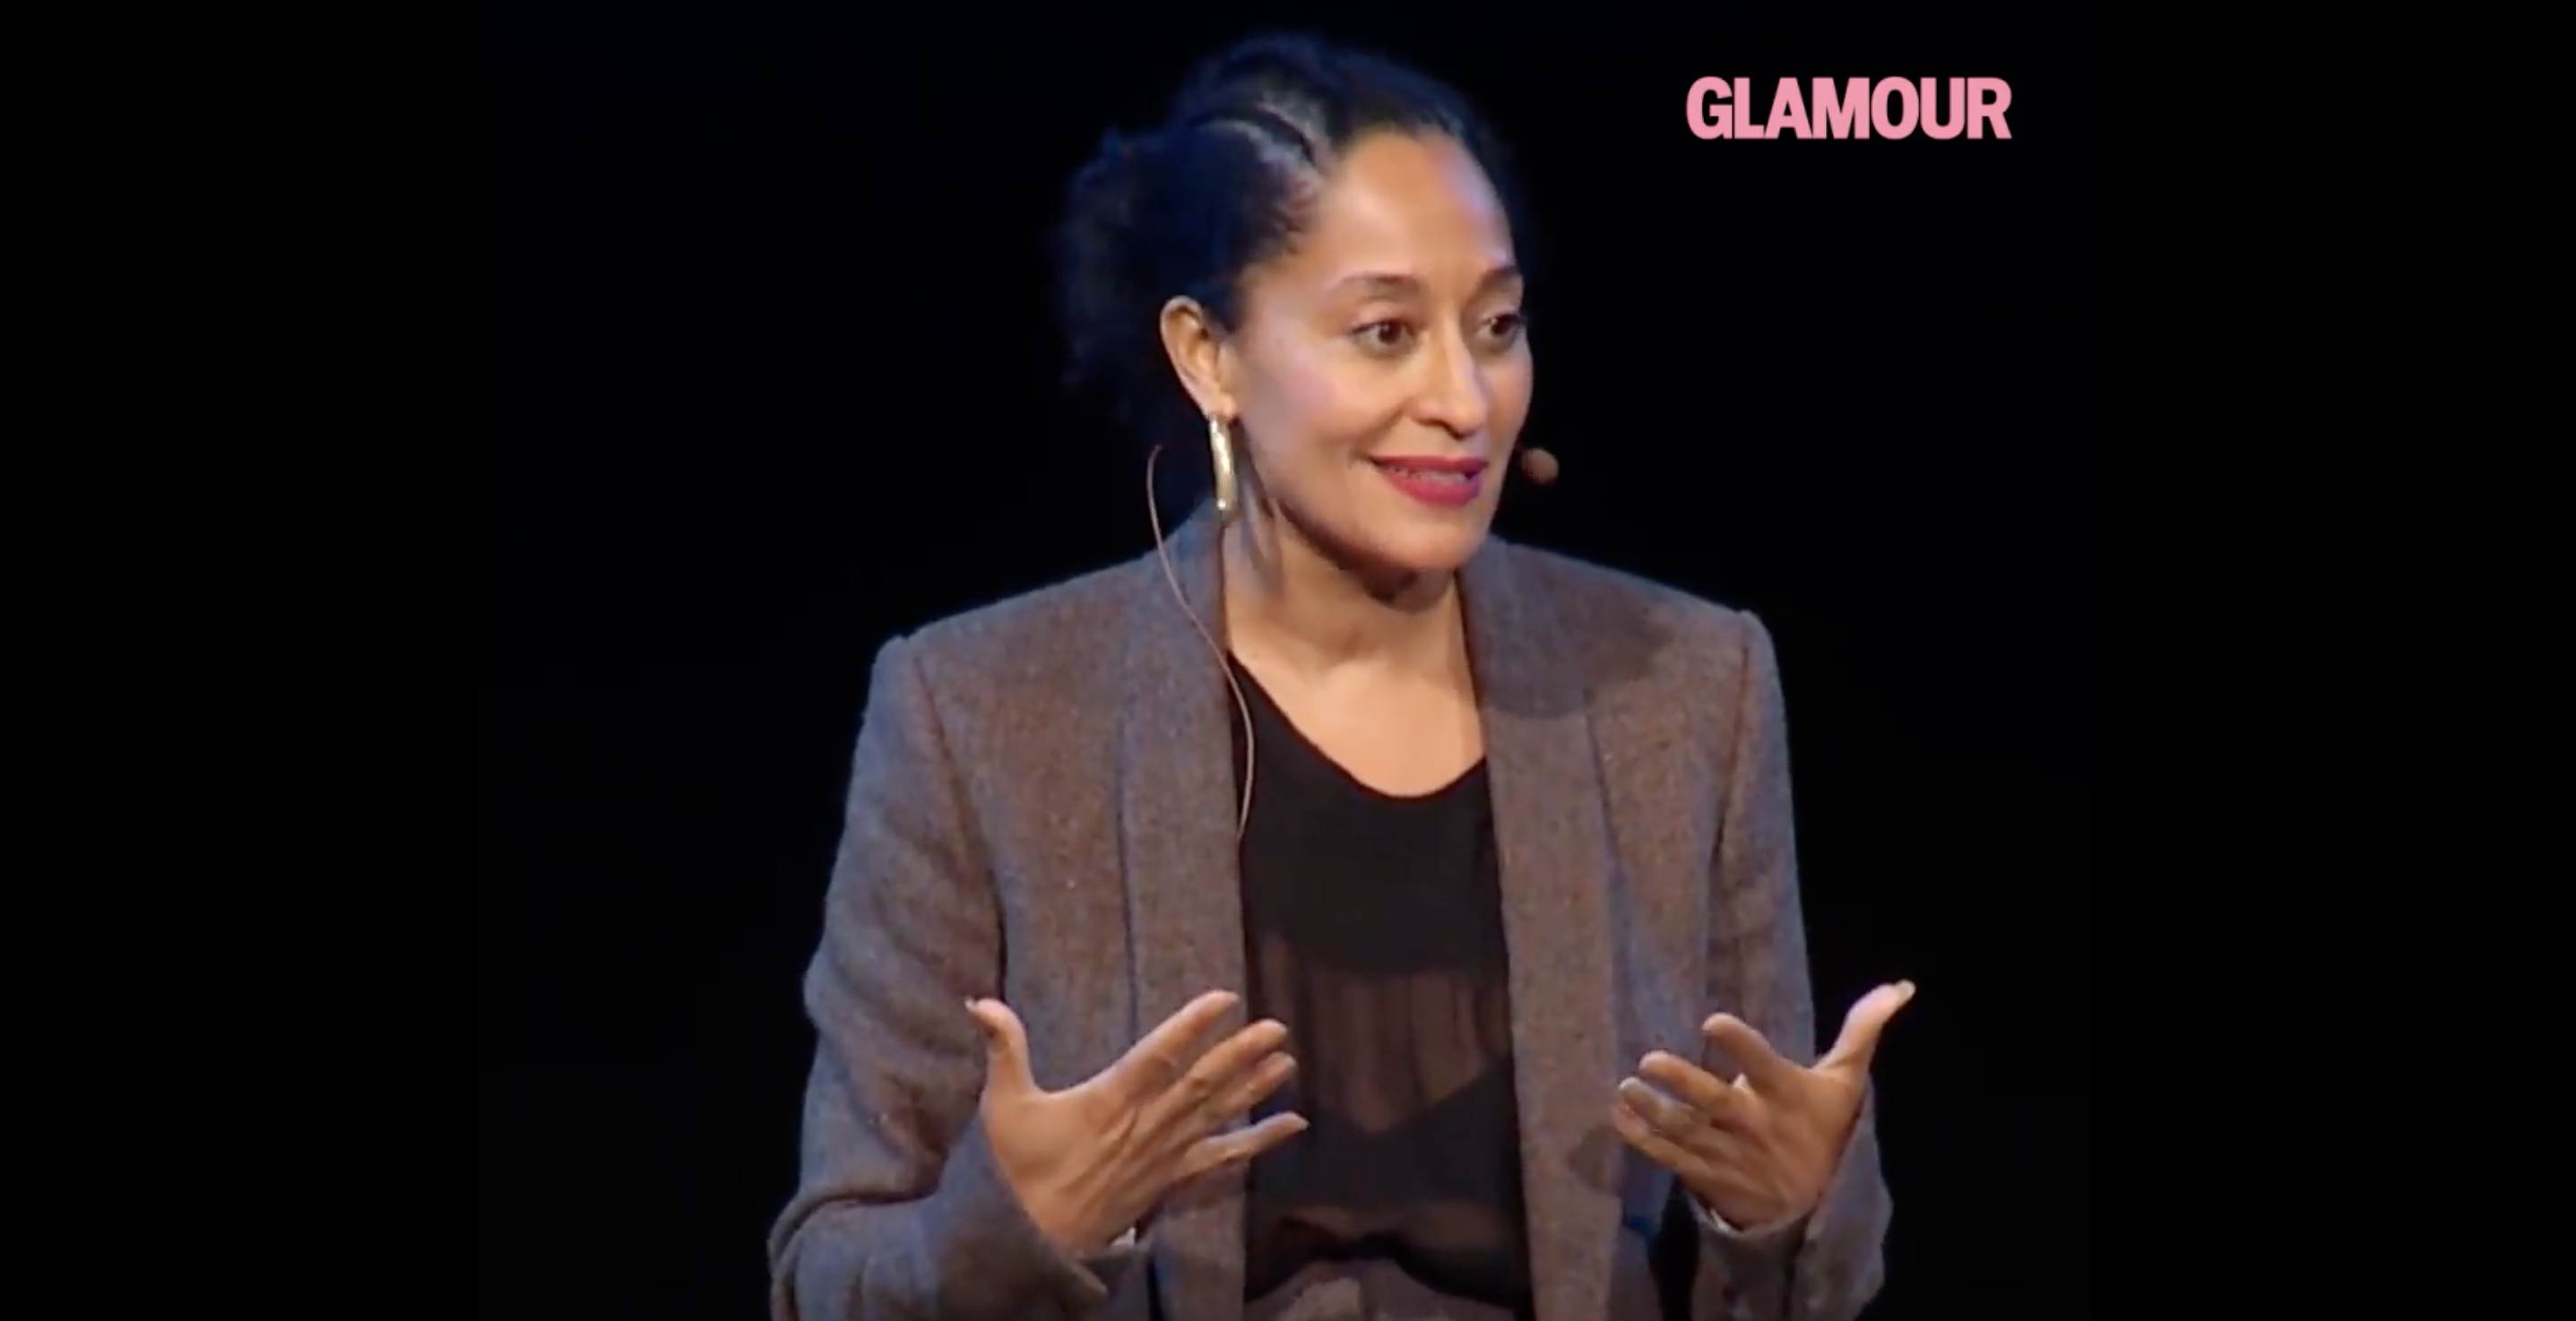 Tracee Ellis Ross on Being A Single Female with No Kids